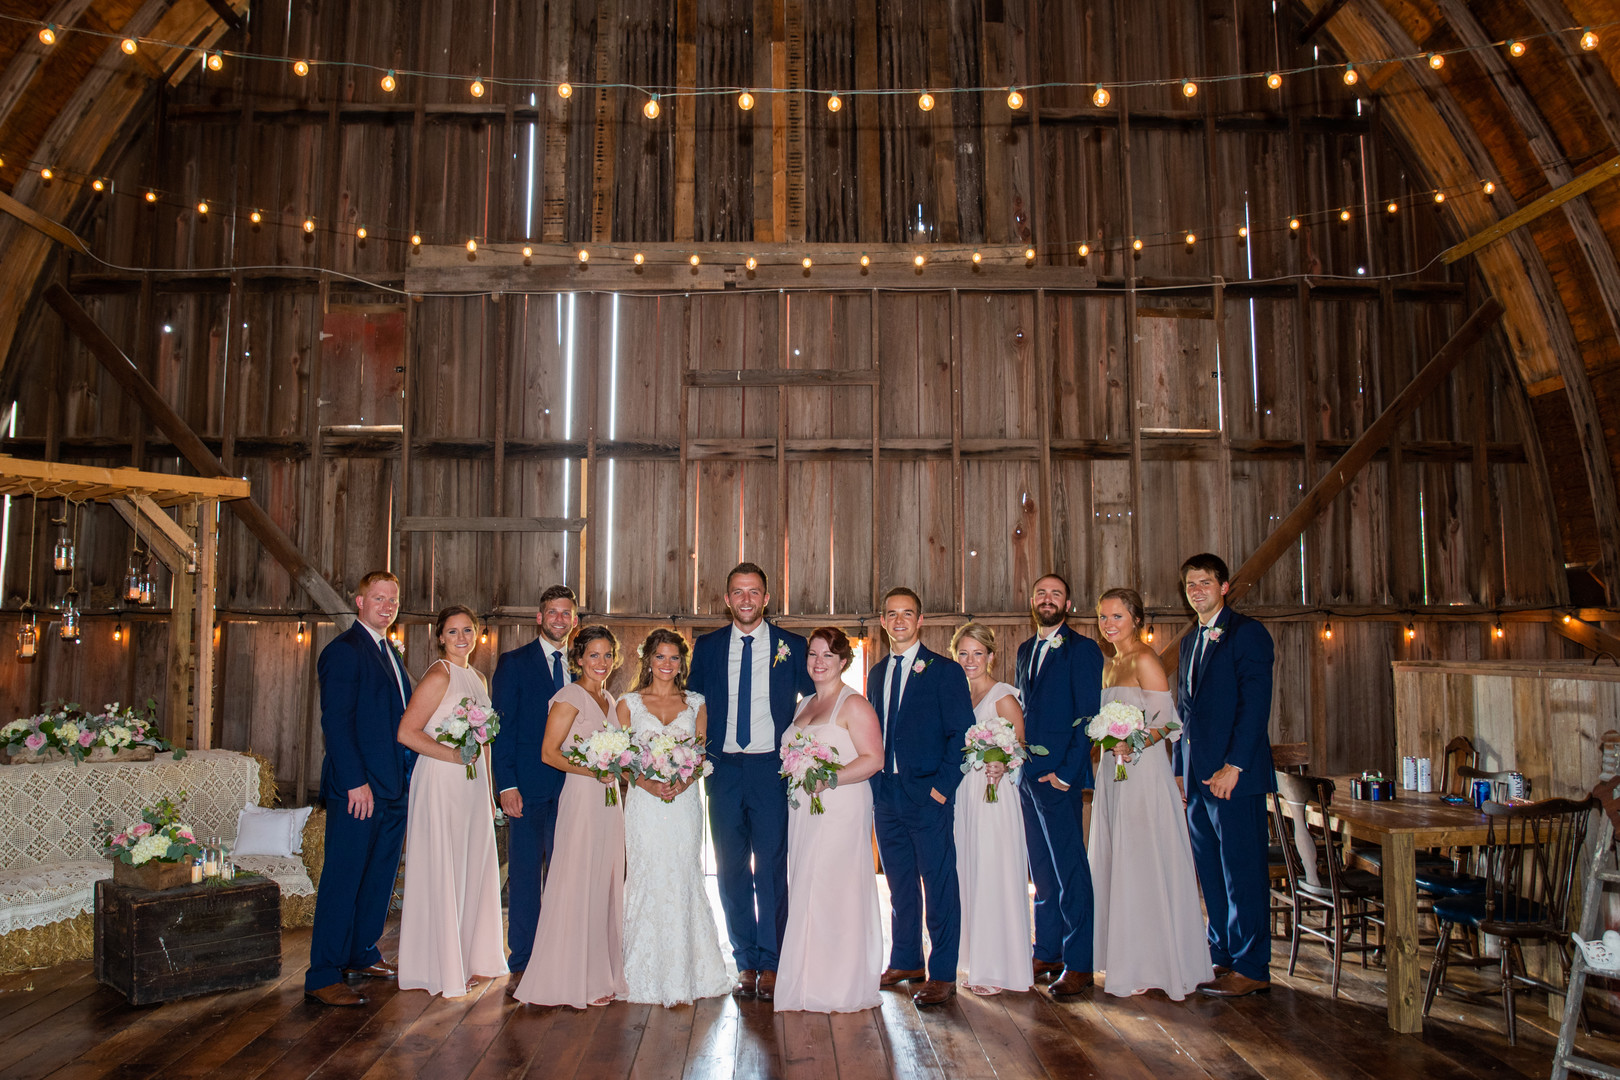 Barn wedding in Rock Falls, IL captured by Rick Jennisch Photography. Find more wedding inspiration at CHItheeWED.com!